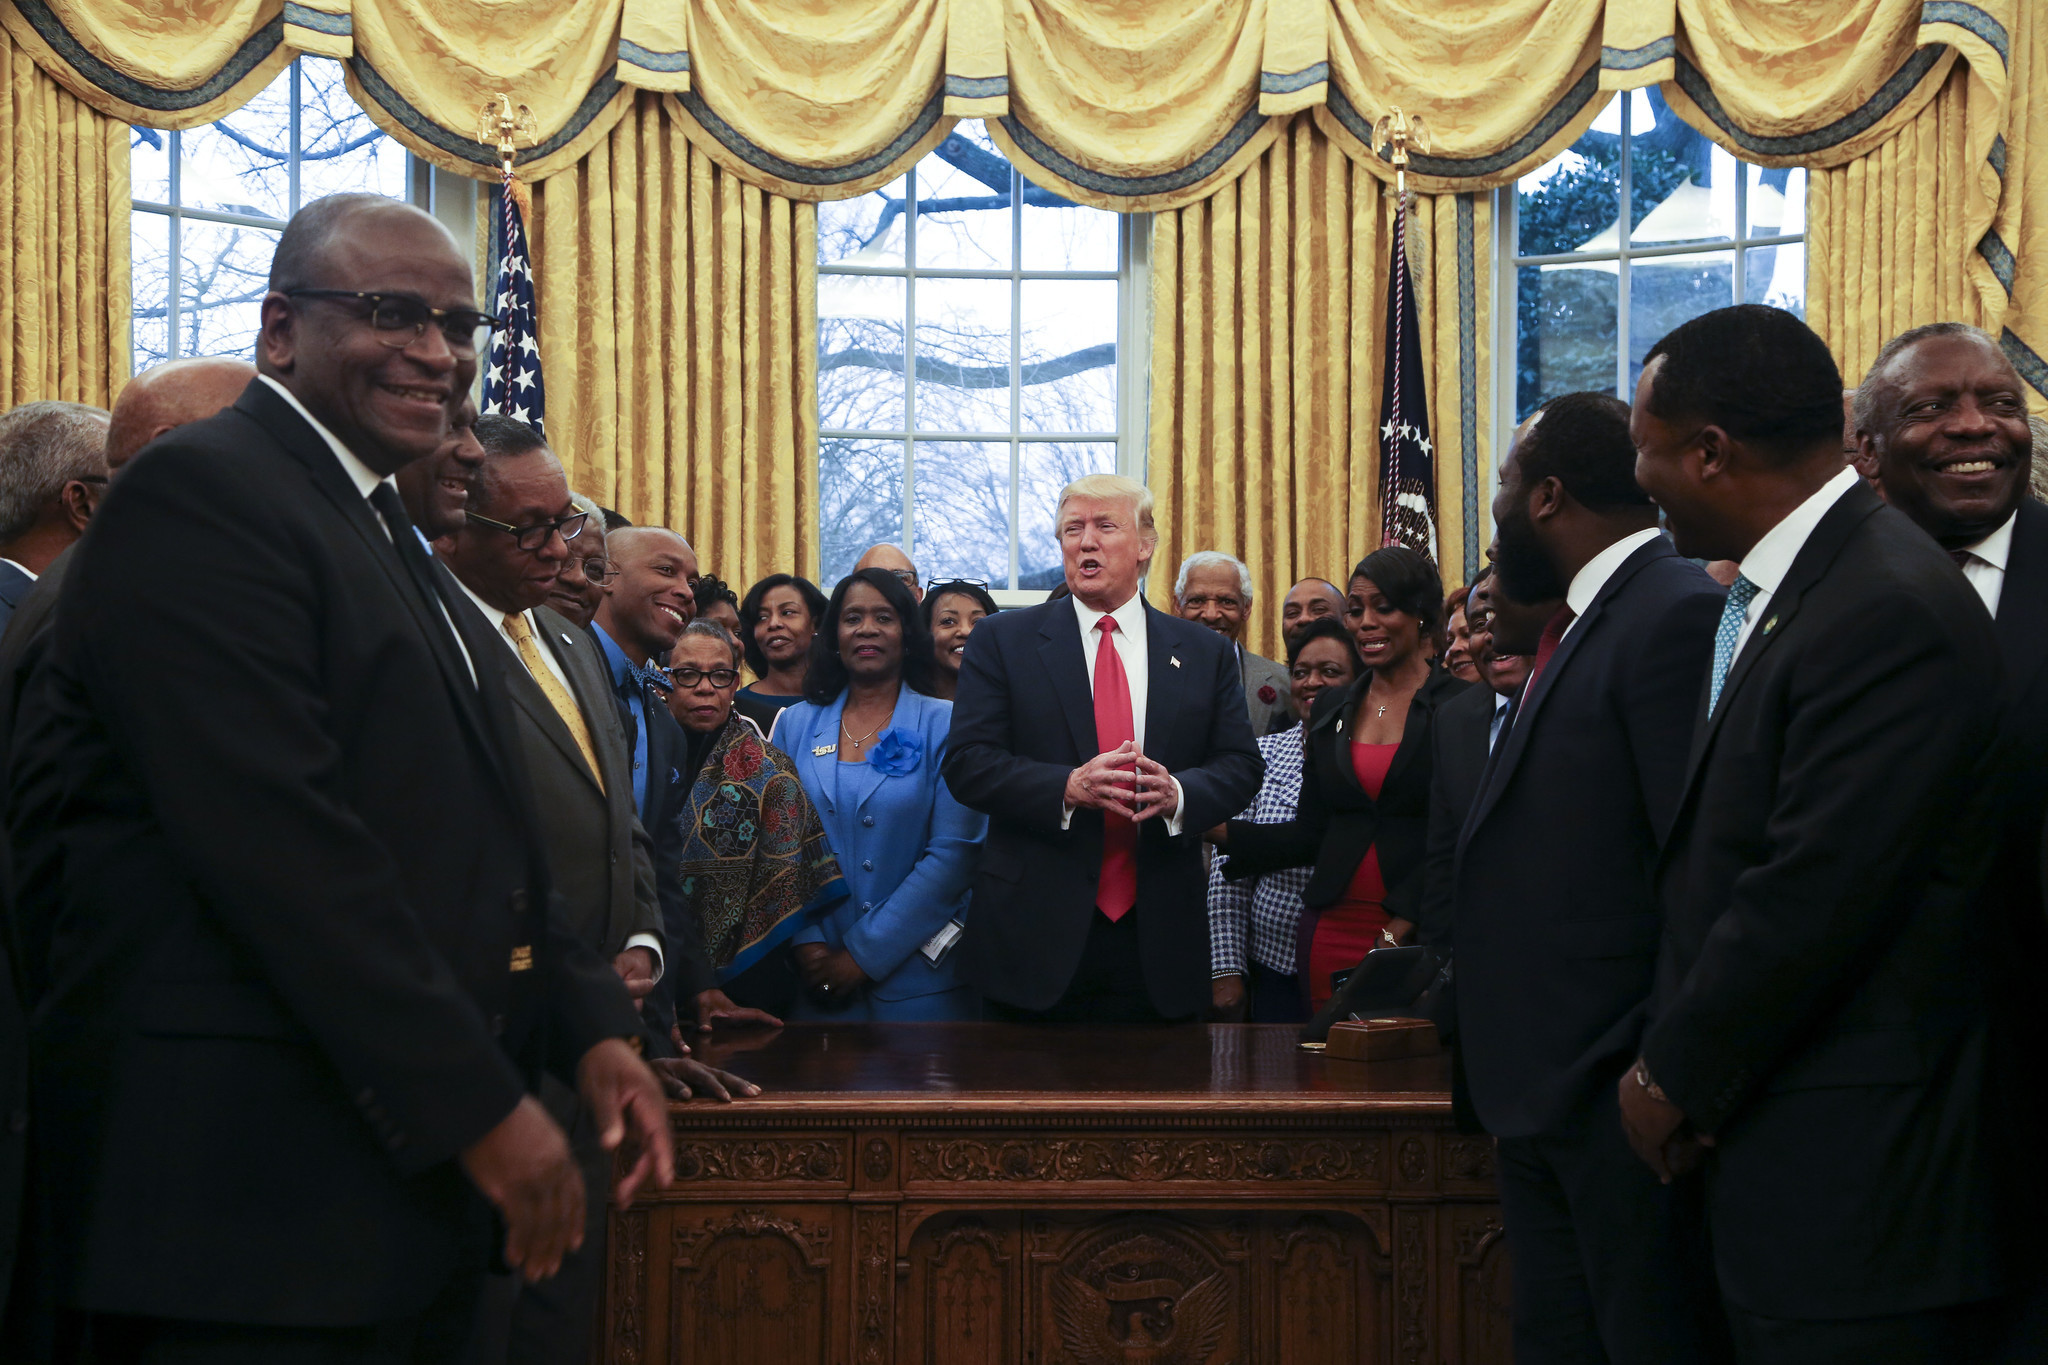 Trump questions whether key funding source for historically black colleges is constitutional